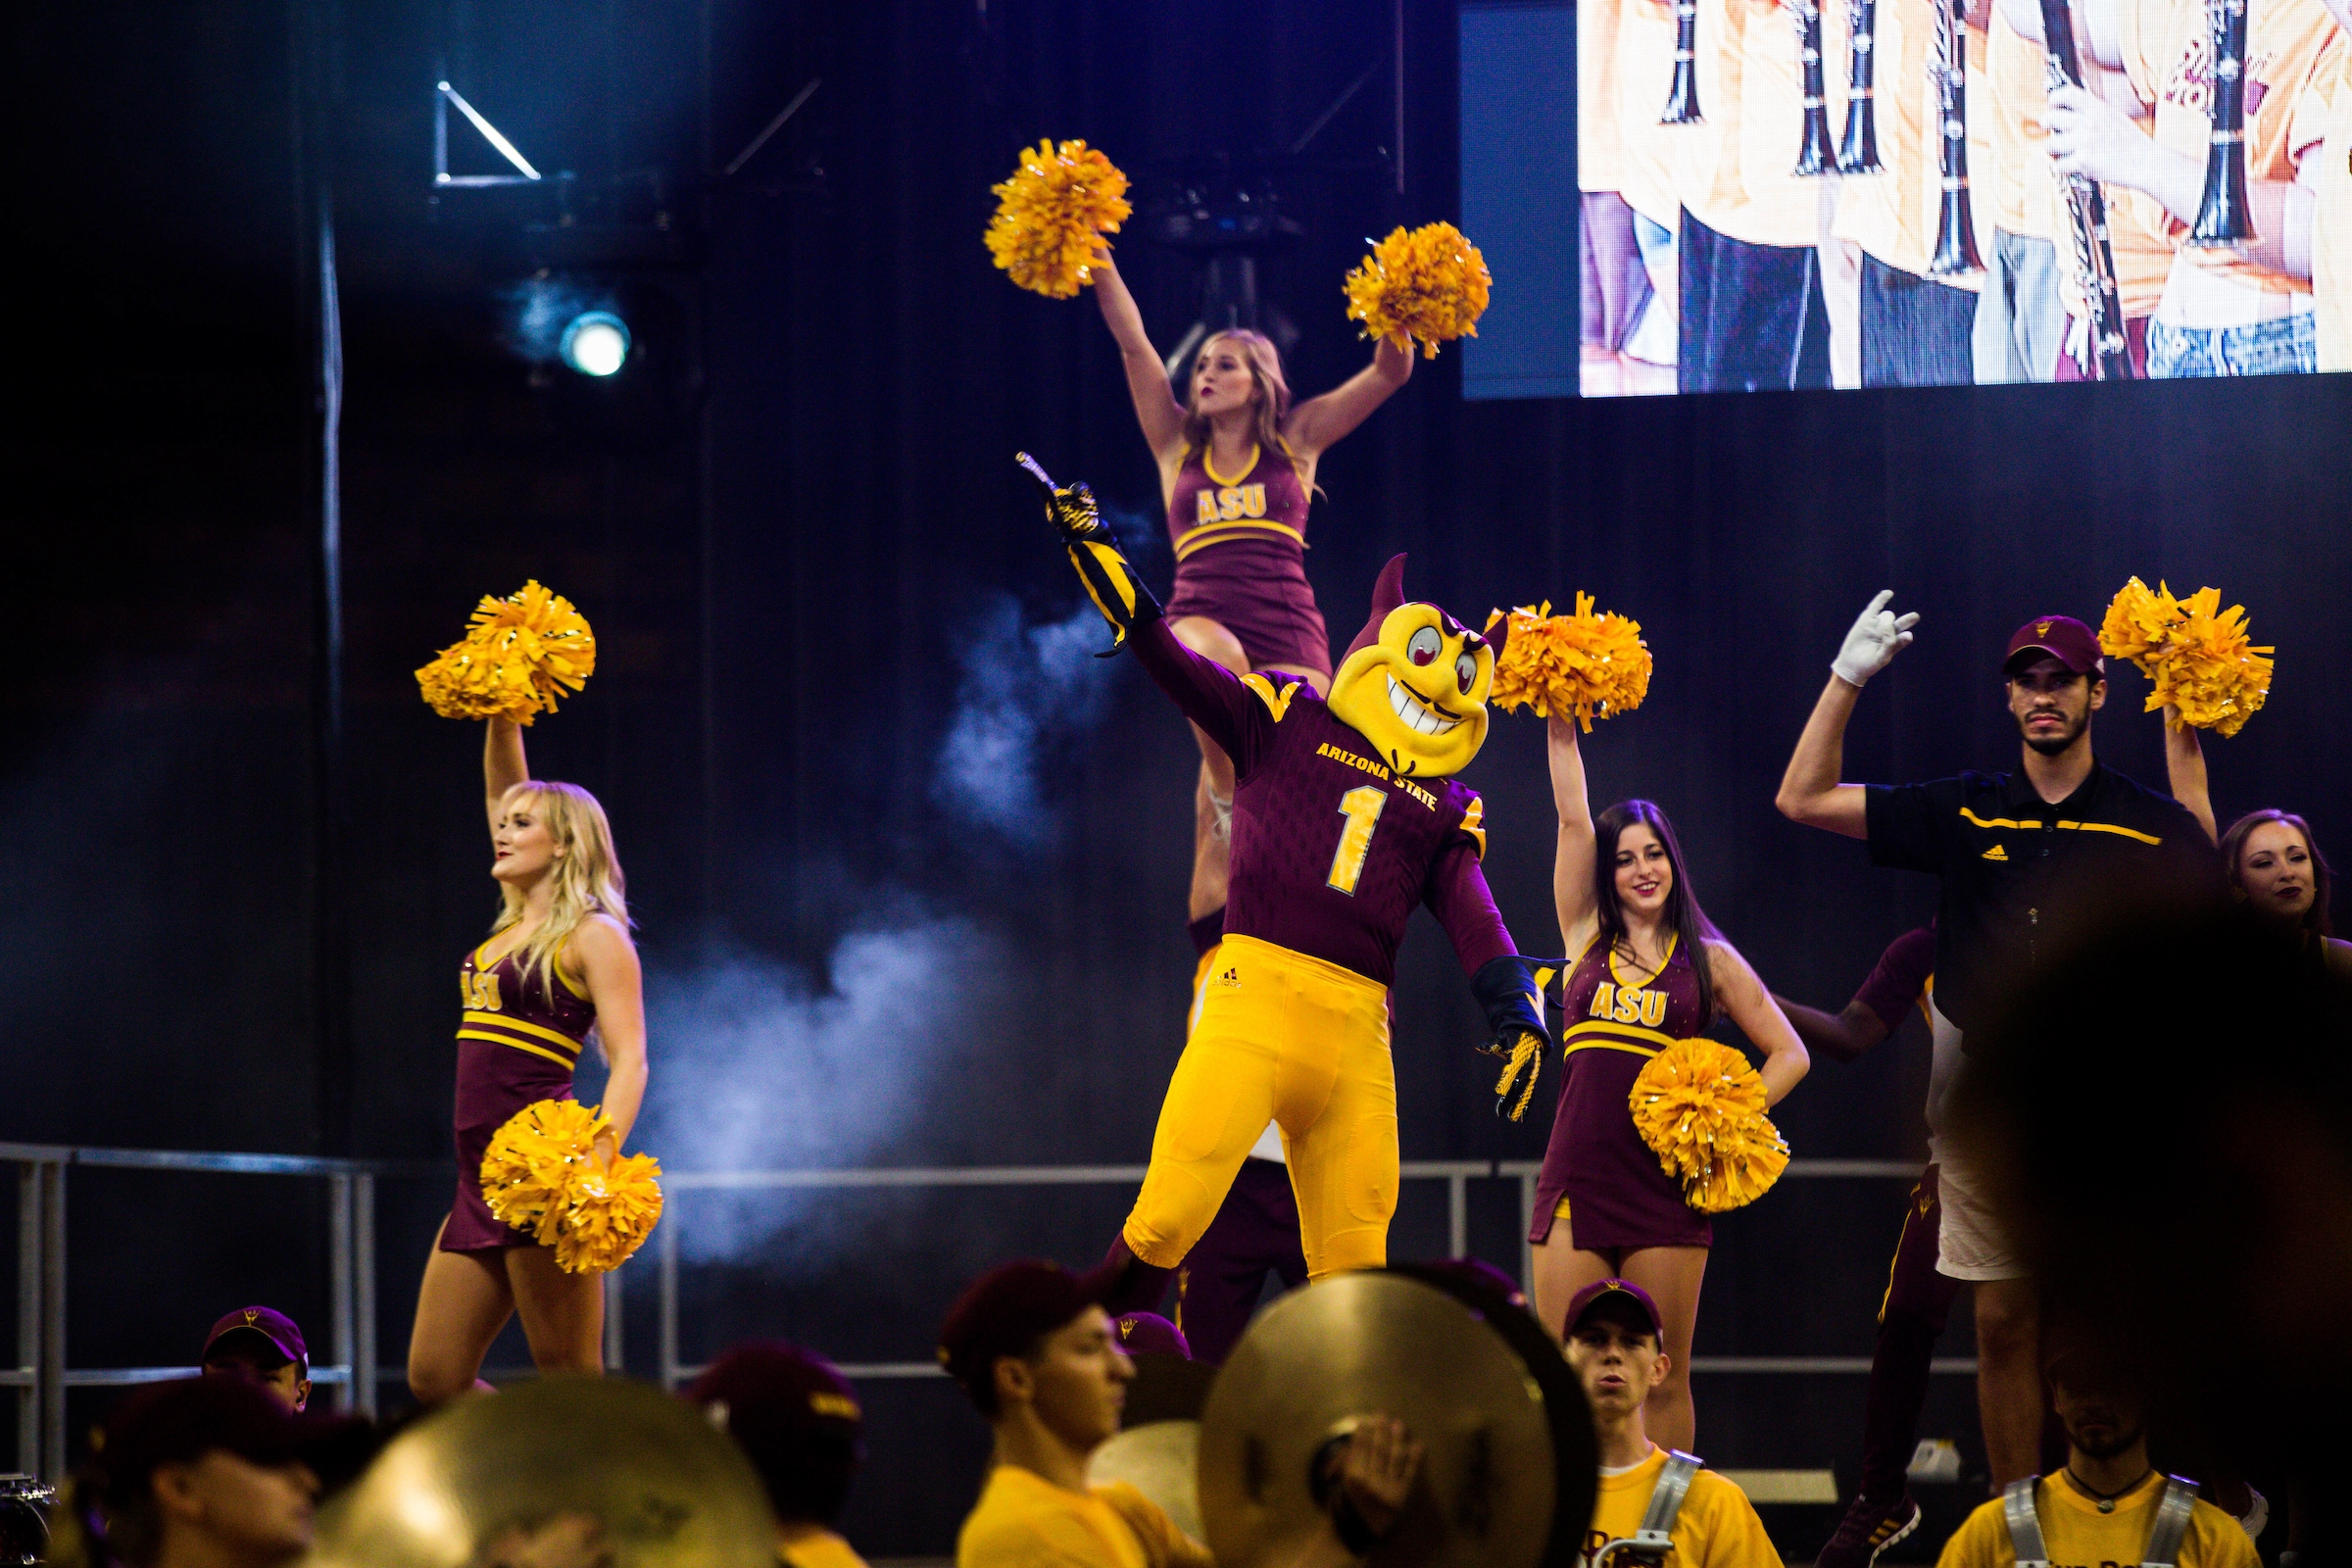 Sparky and cheerleaders cheer at Sun Devil Welcome